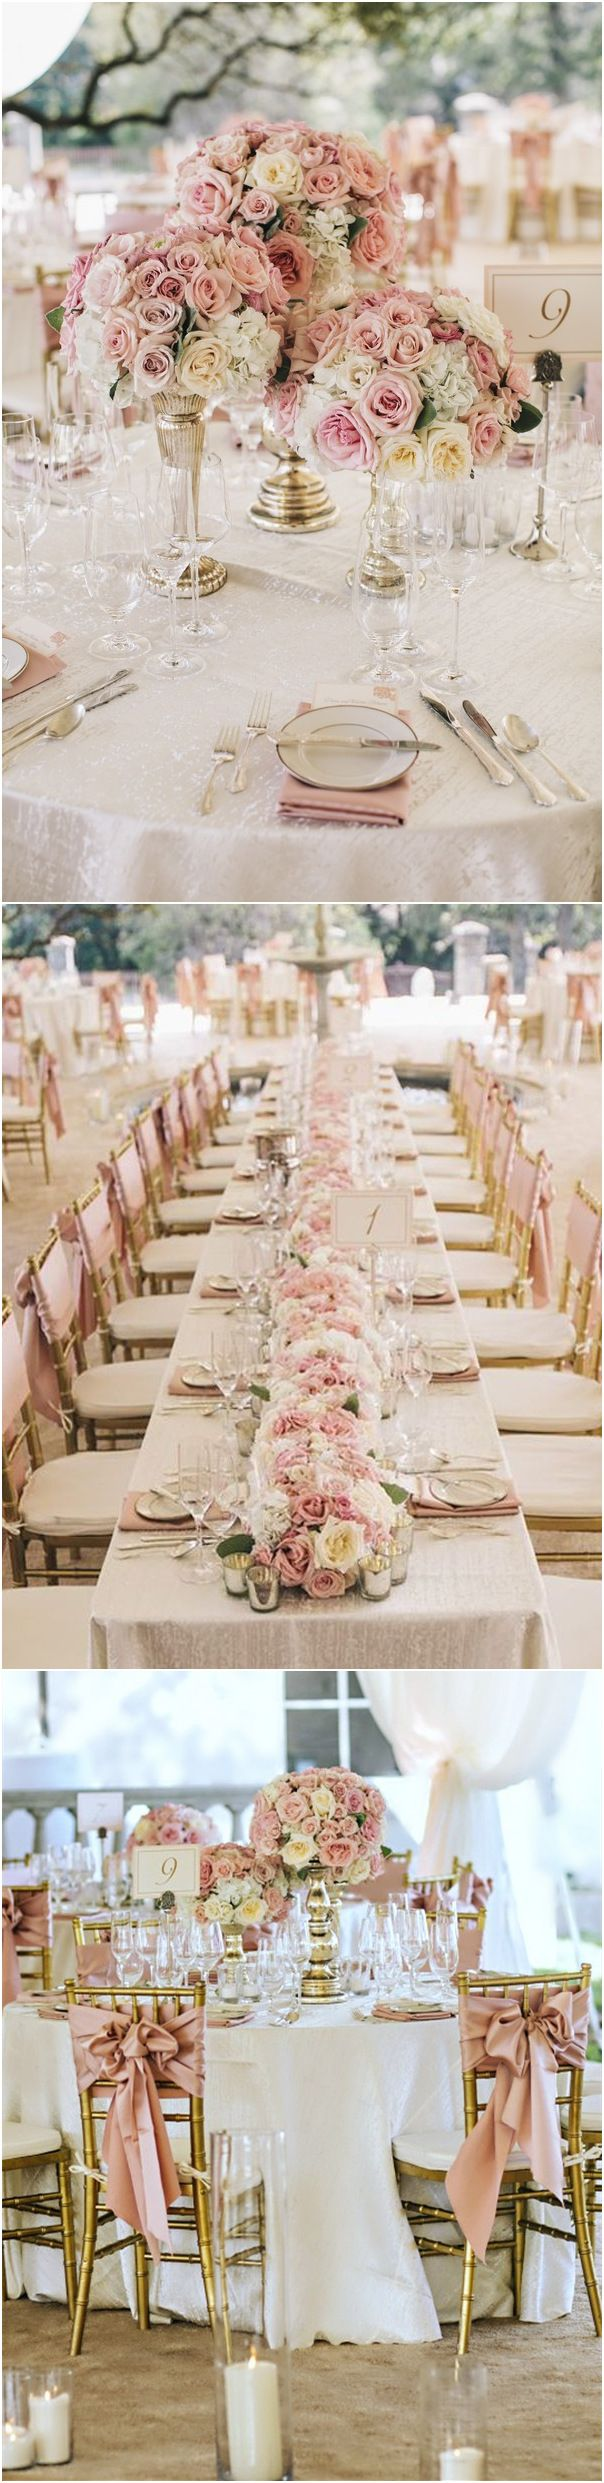 Trending 24 Dusty Rose Wedding Color Ideas For 2017 Page 3 Of 3